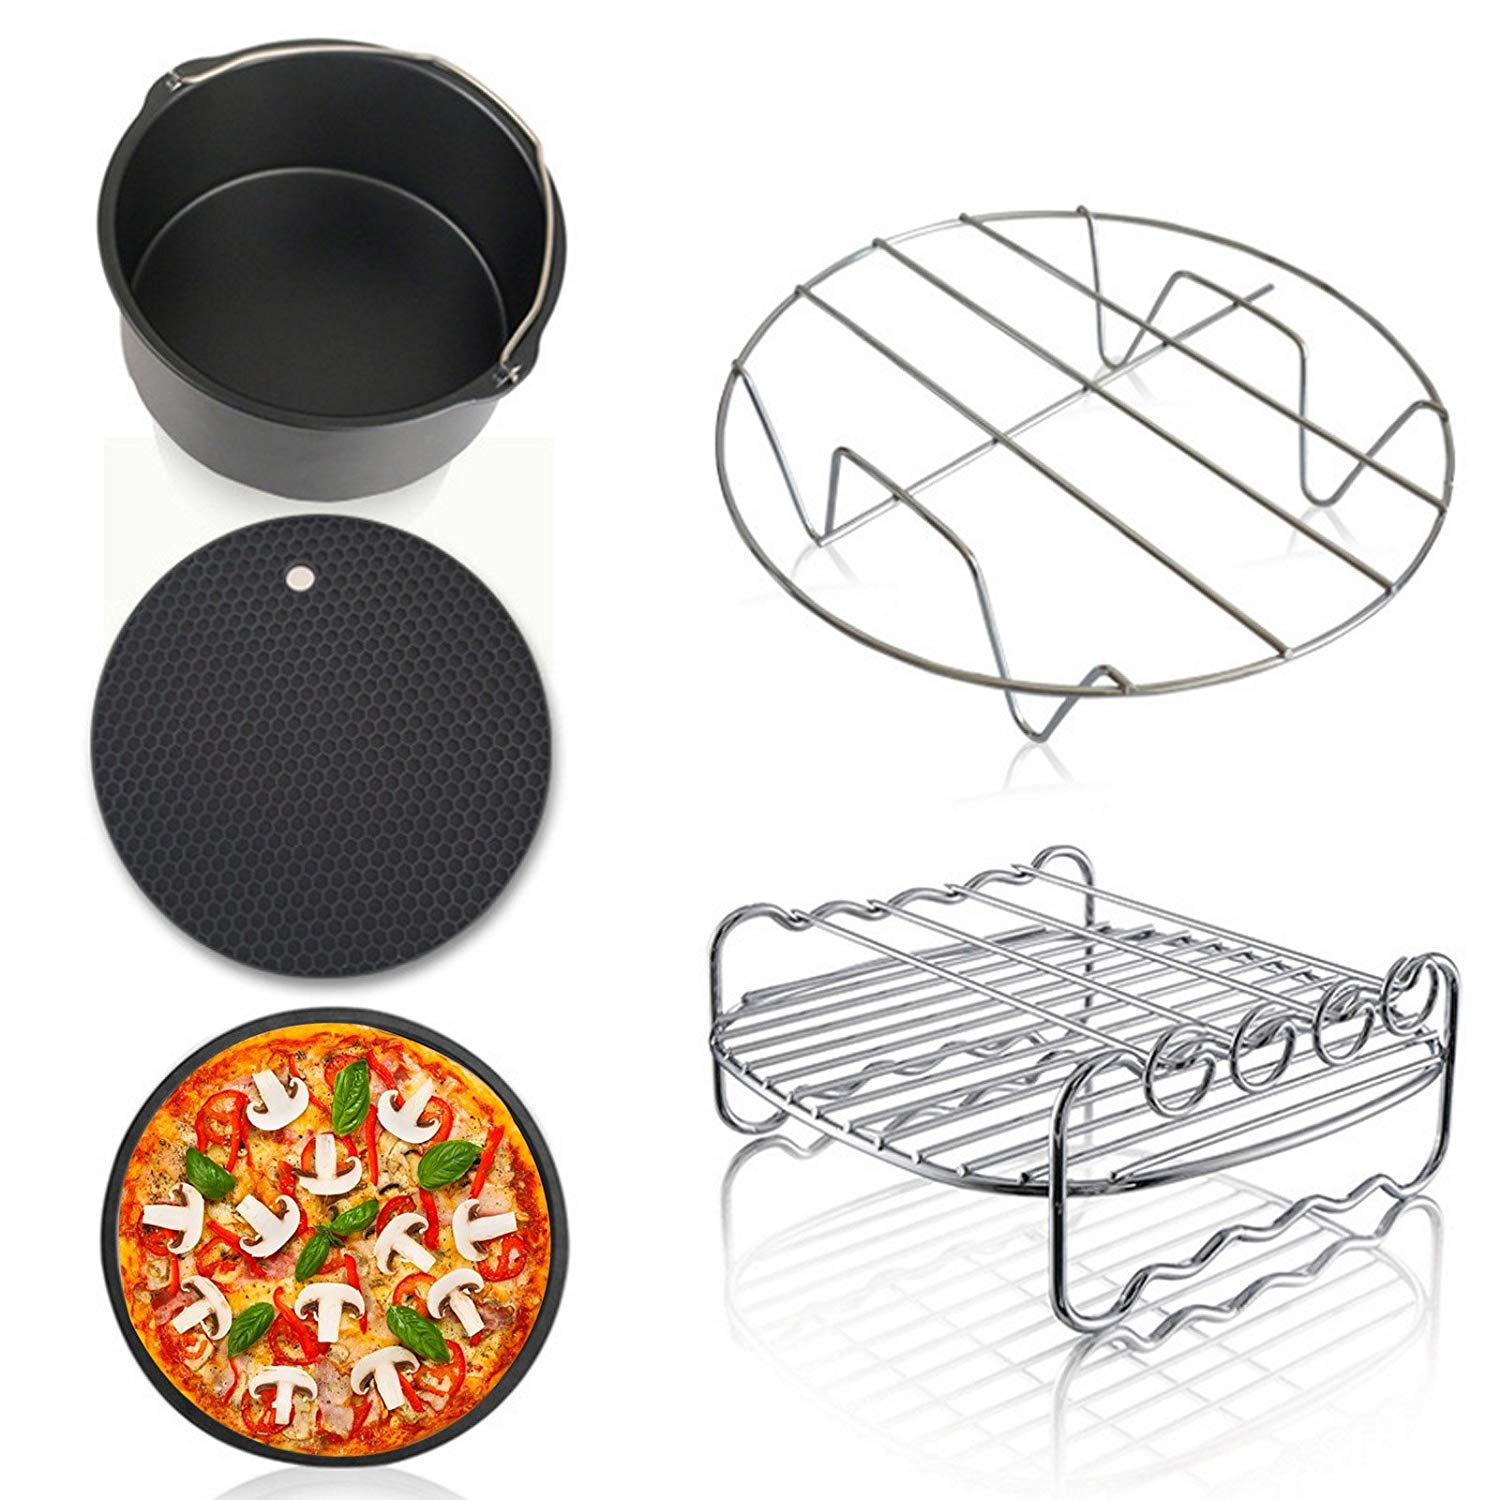 Air Fryer Accessories Deep Fryers Universal including Fryer basket,baking pizza pan,grill pan,pan support, pad by Hierkryst